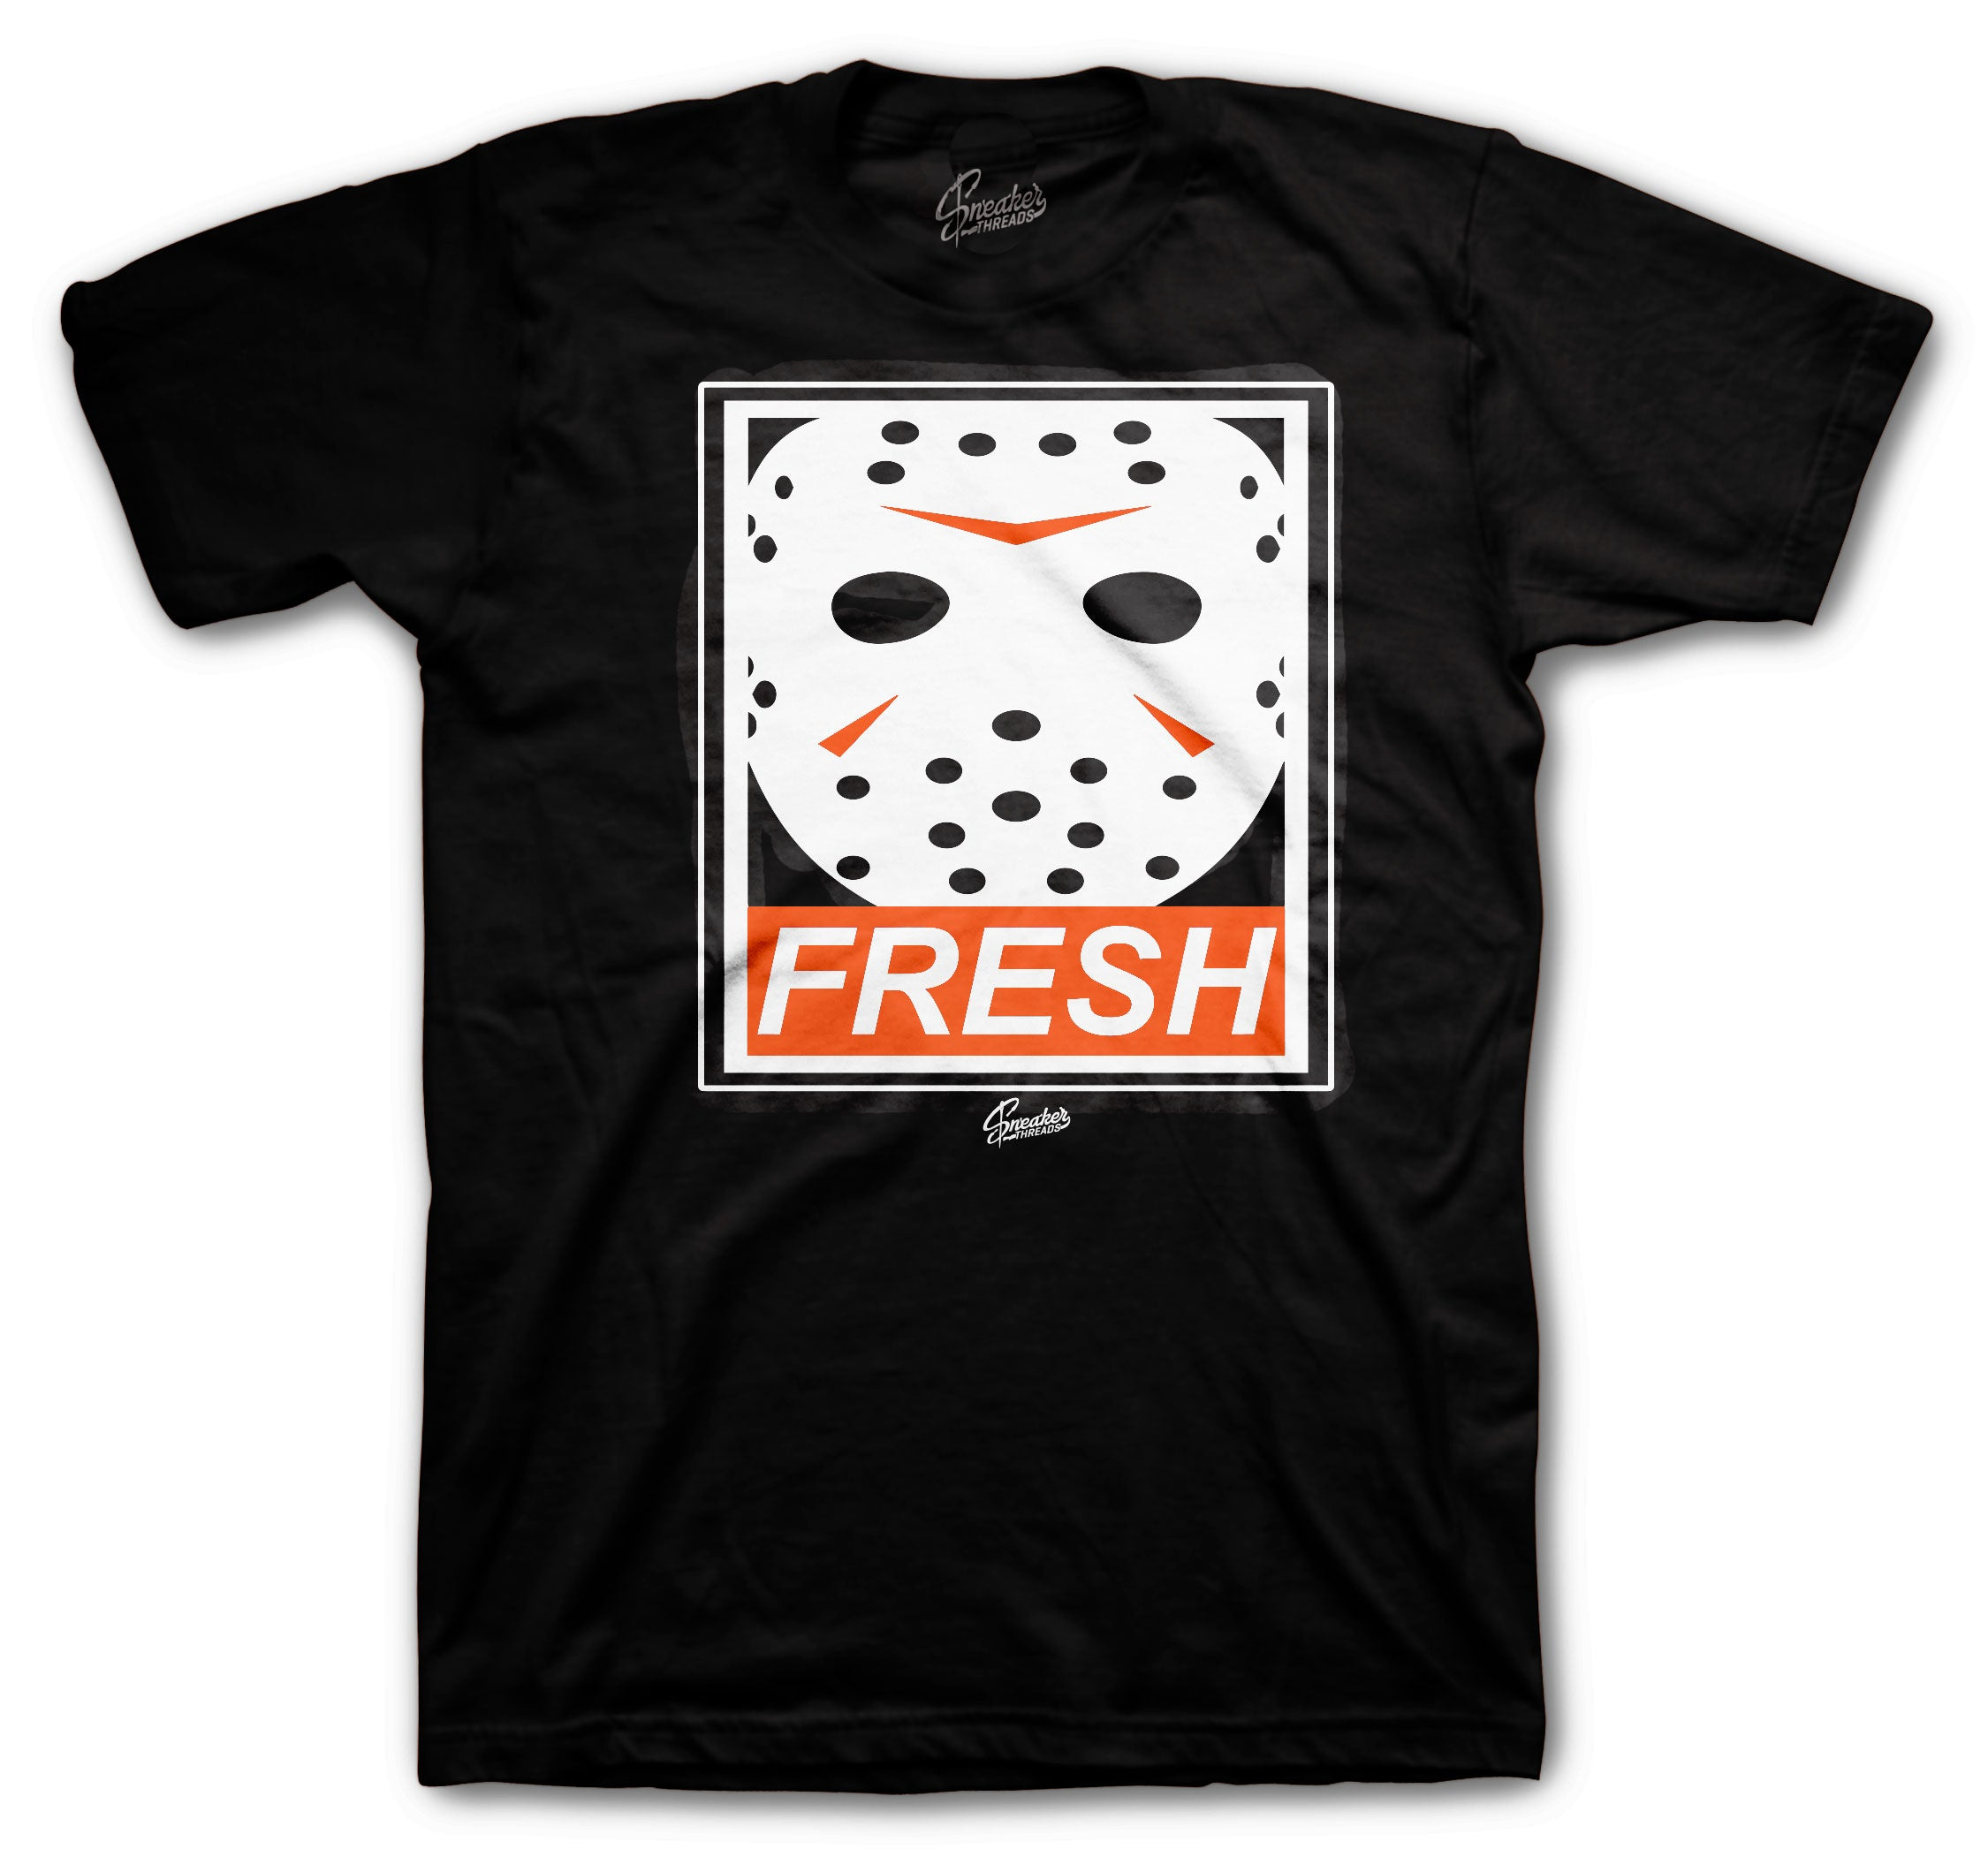 Halloween cool shirts to match Foams Shattered Backboard sneakers